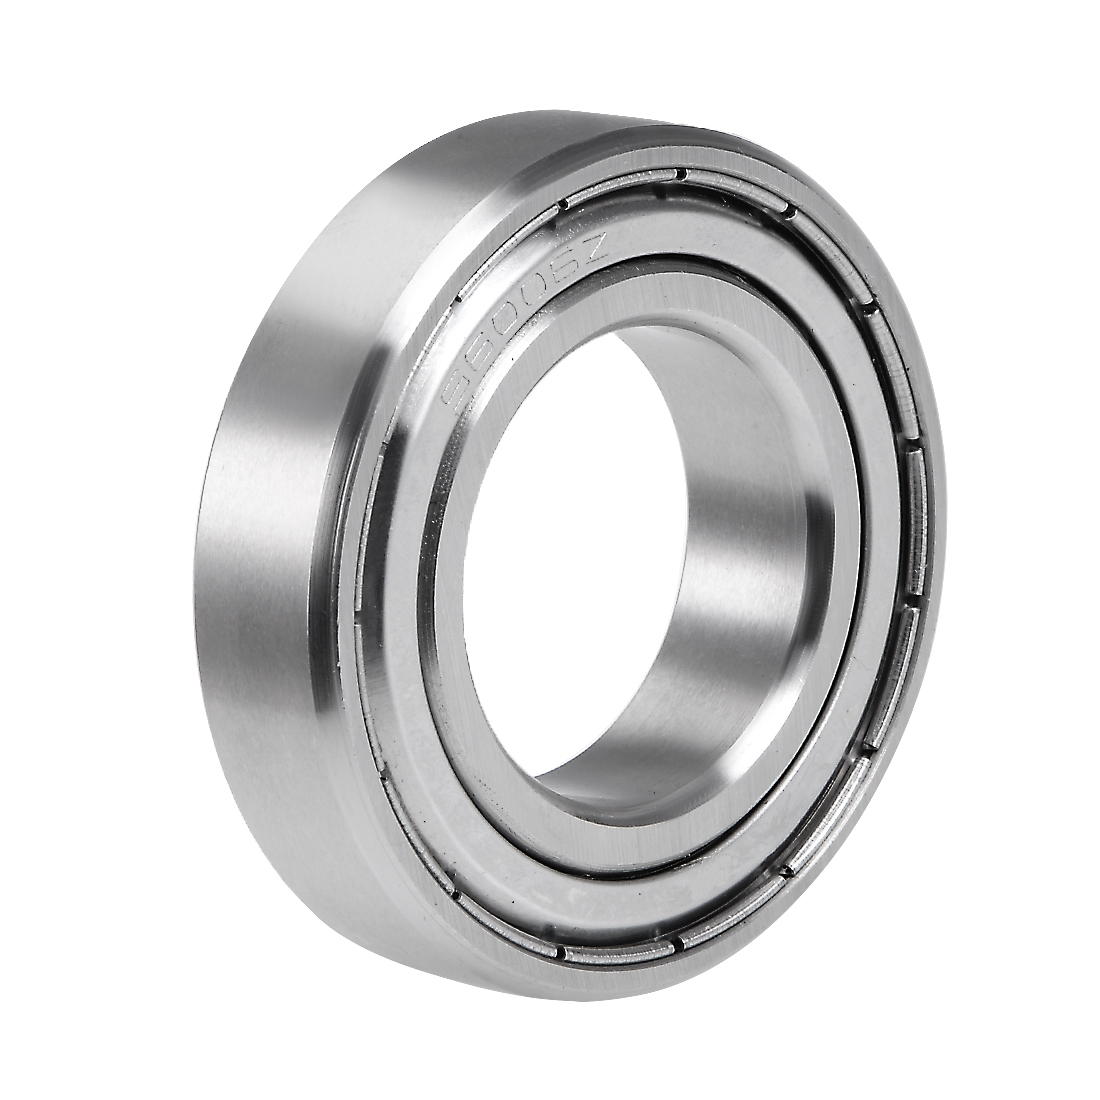 S6006ZZ Stainless Steel Ball Bearing 30x55x13mm Double Shielded 6006Z Bearings